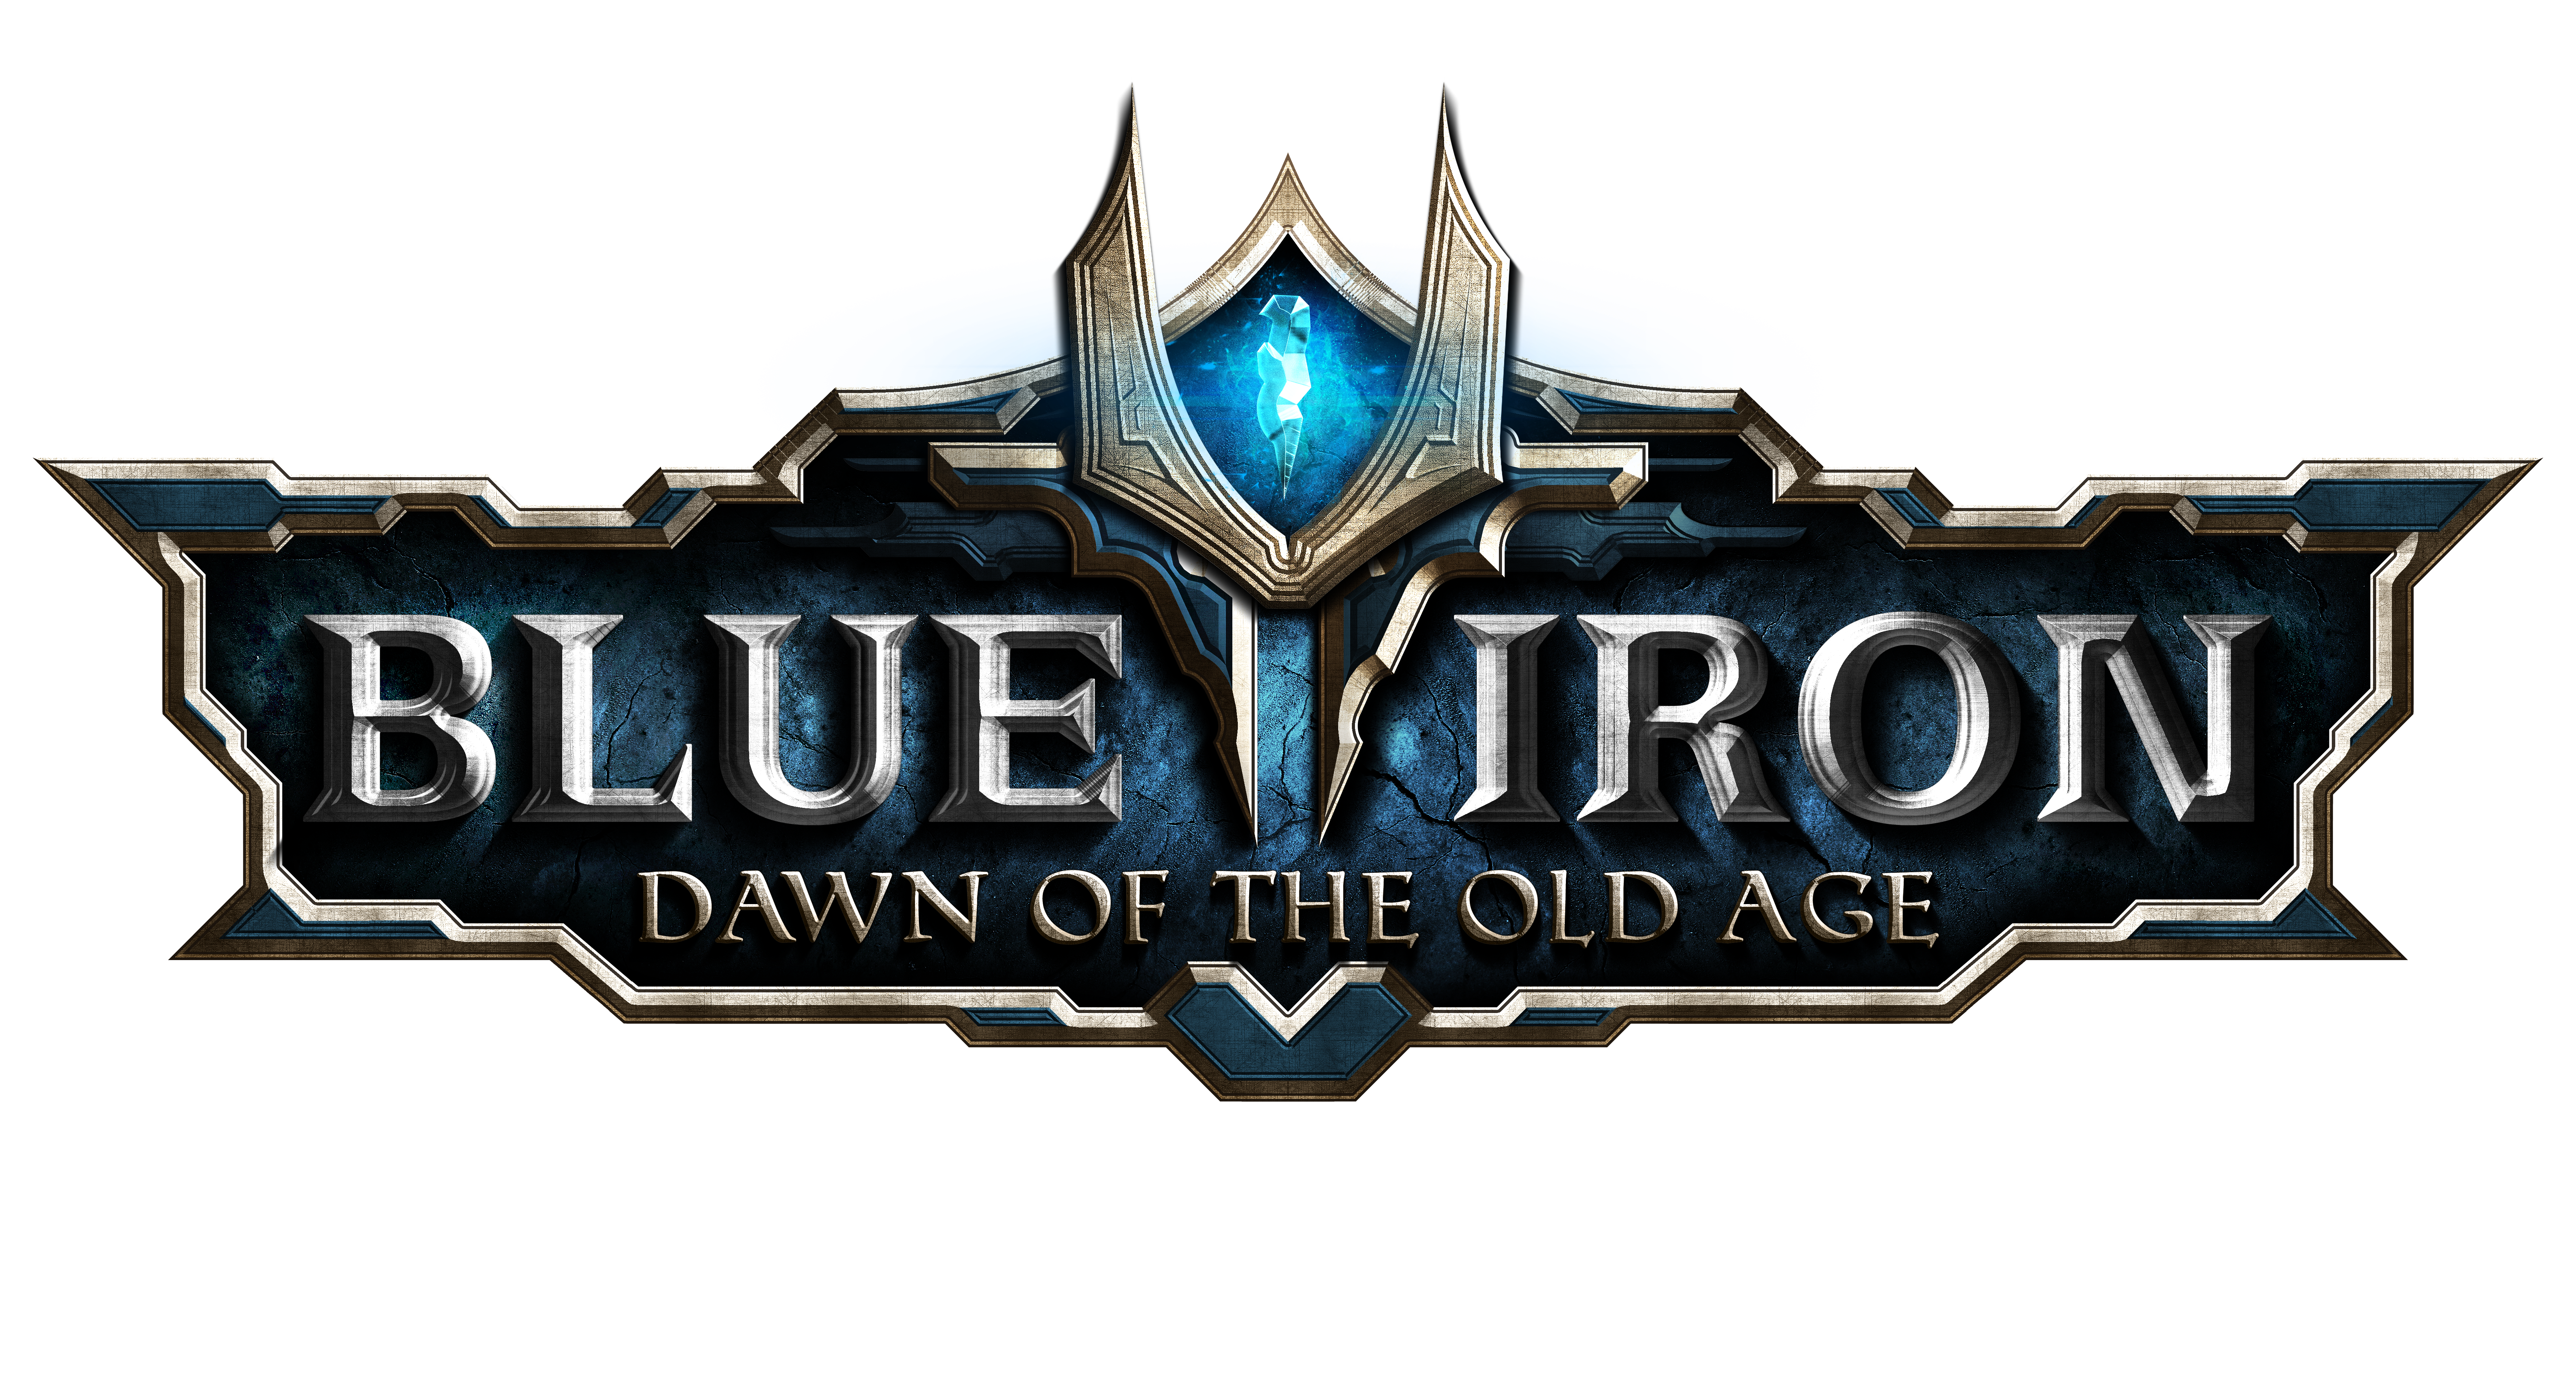 4 tips for the best logo for your game d blue iron dawn of the blue iron texture logo png file altavistaventures Images